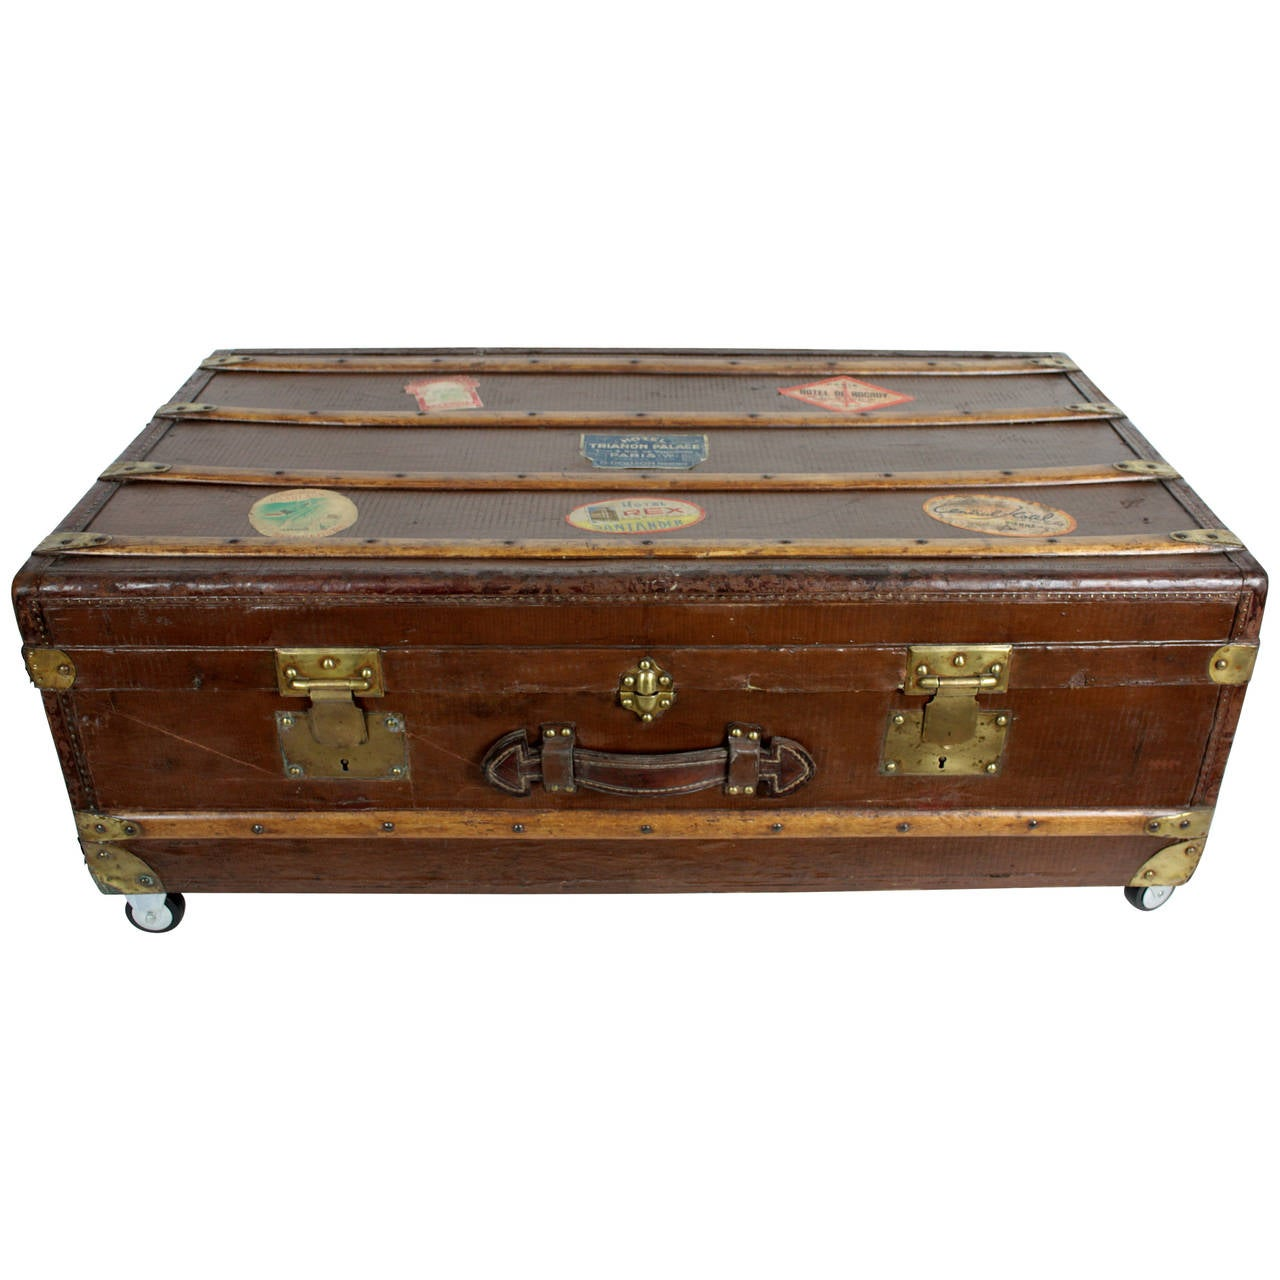 19 Th C French Steamer Trunk As Coffee Table For Sale At 1stdibs